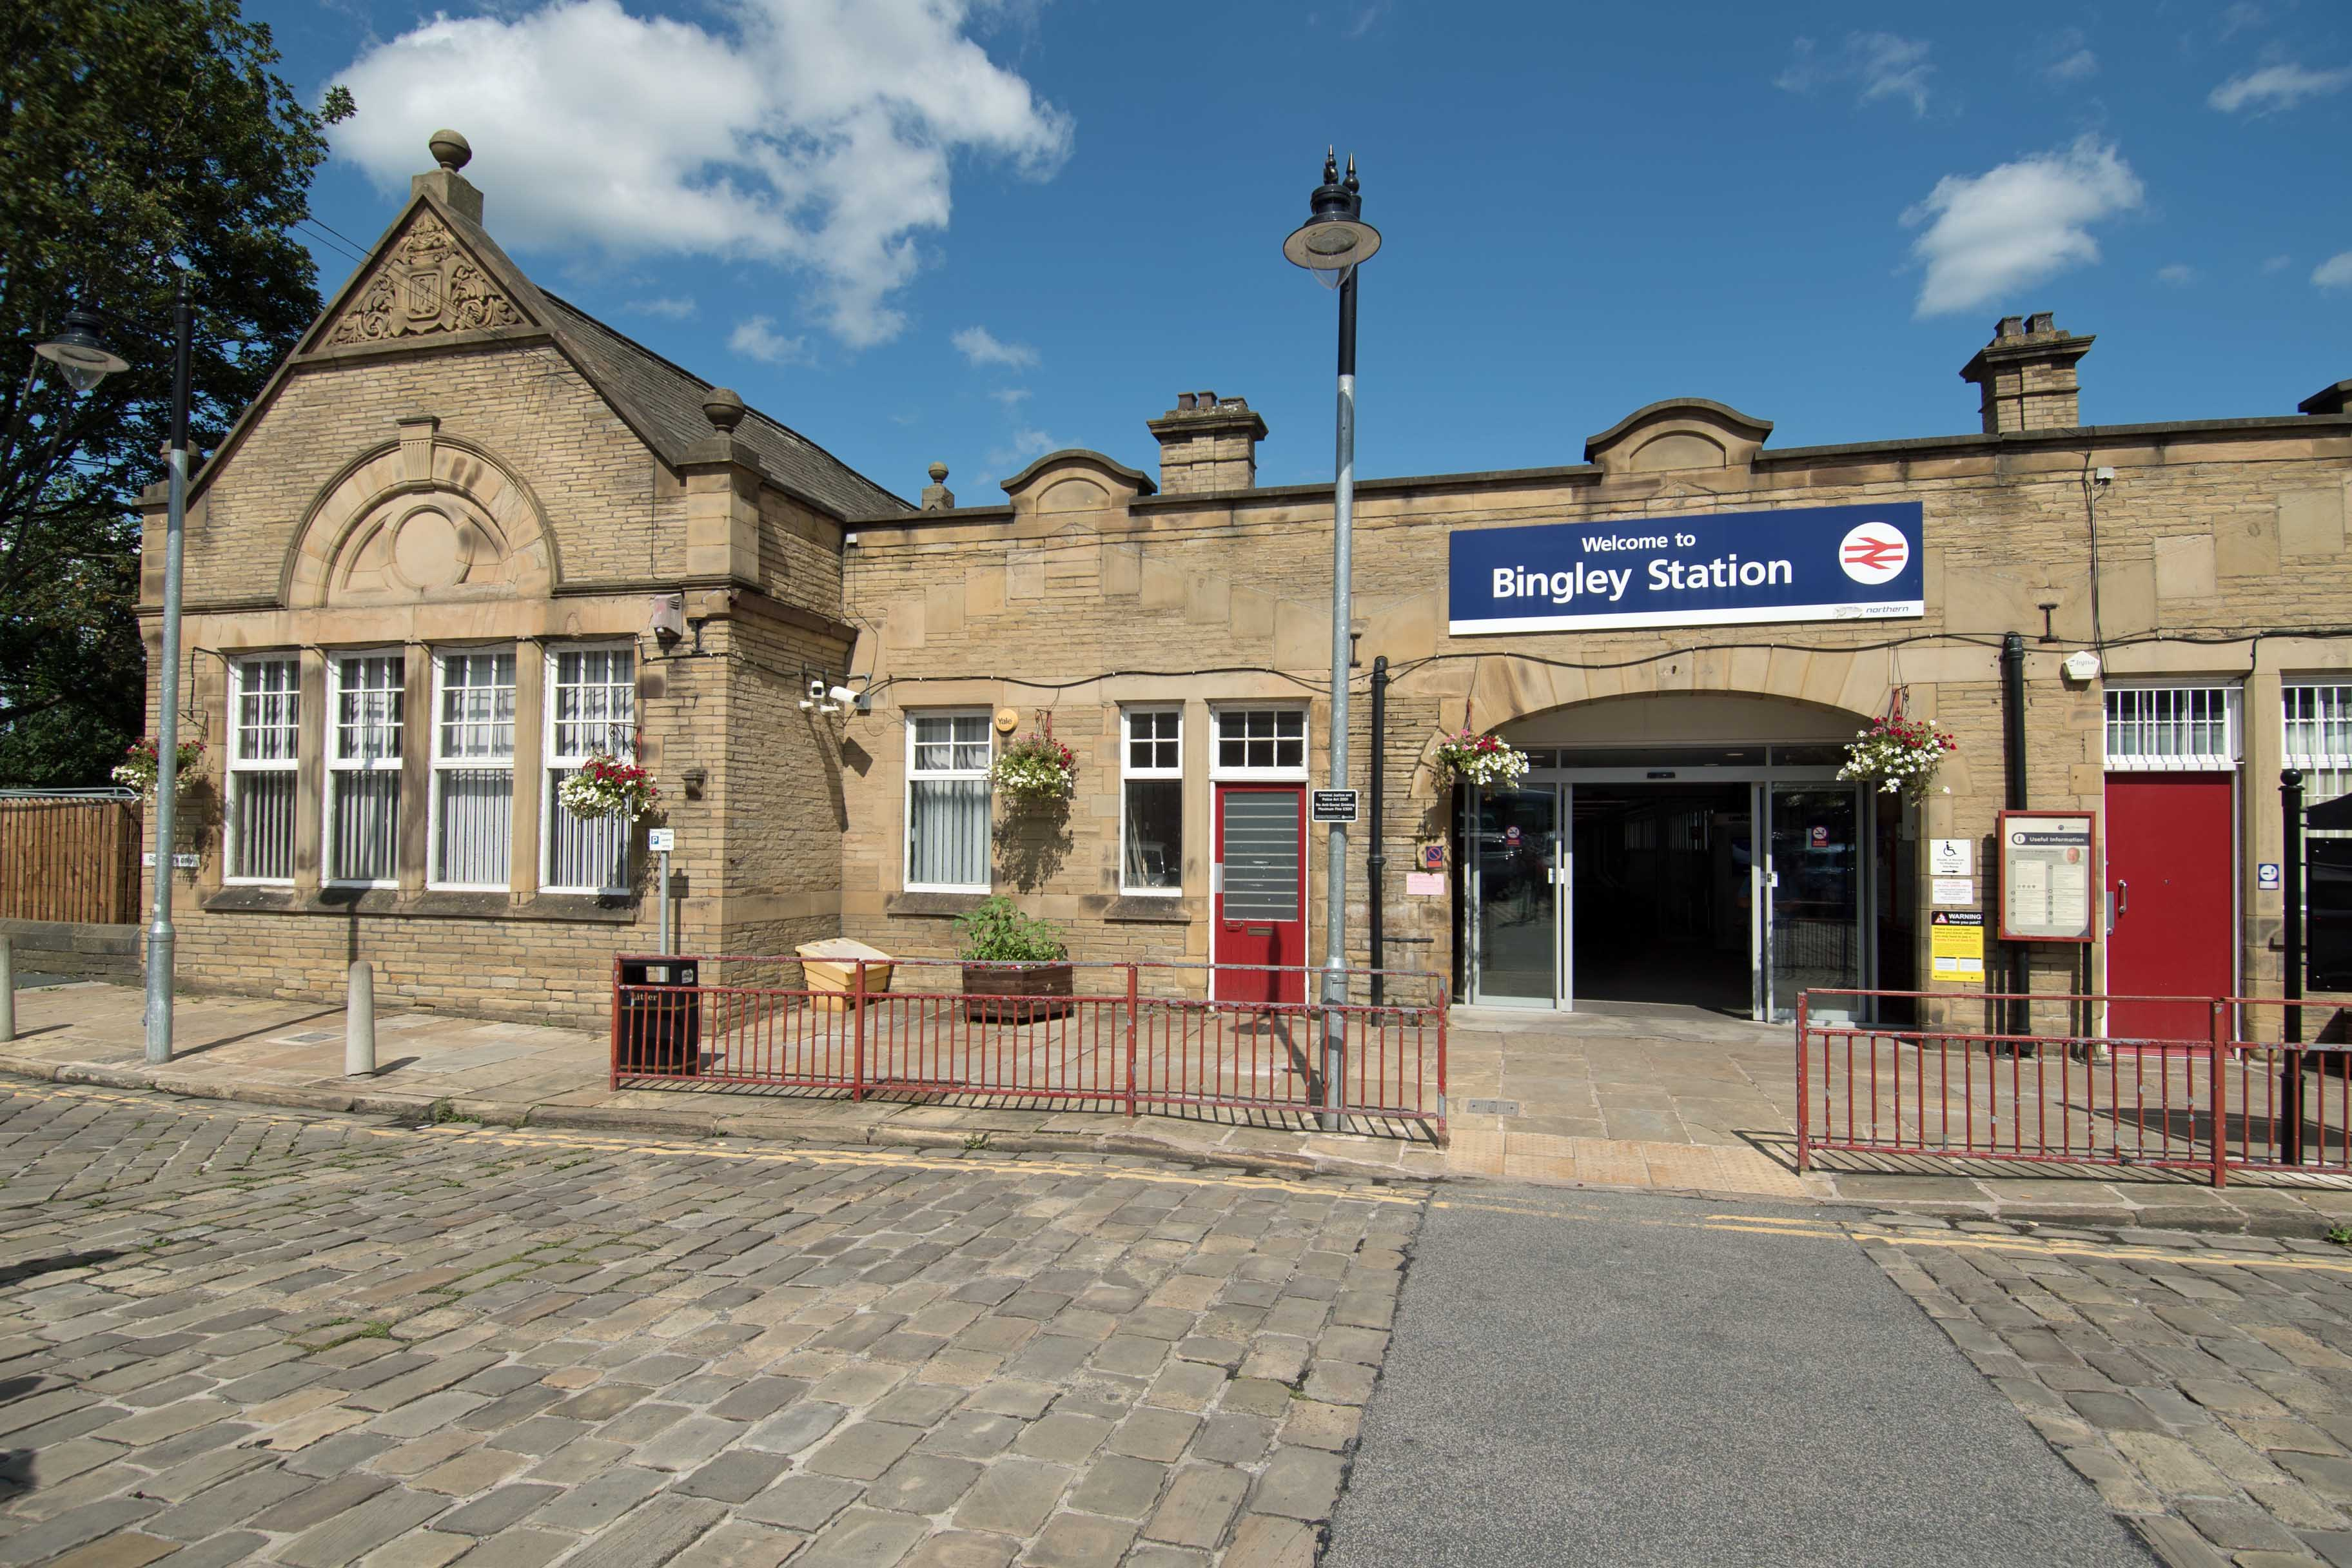 DG329705. Station frontage. Bingley. 29.7.19.crop